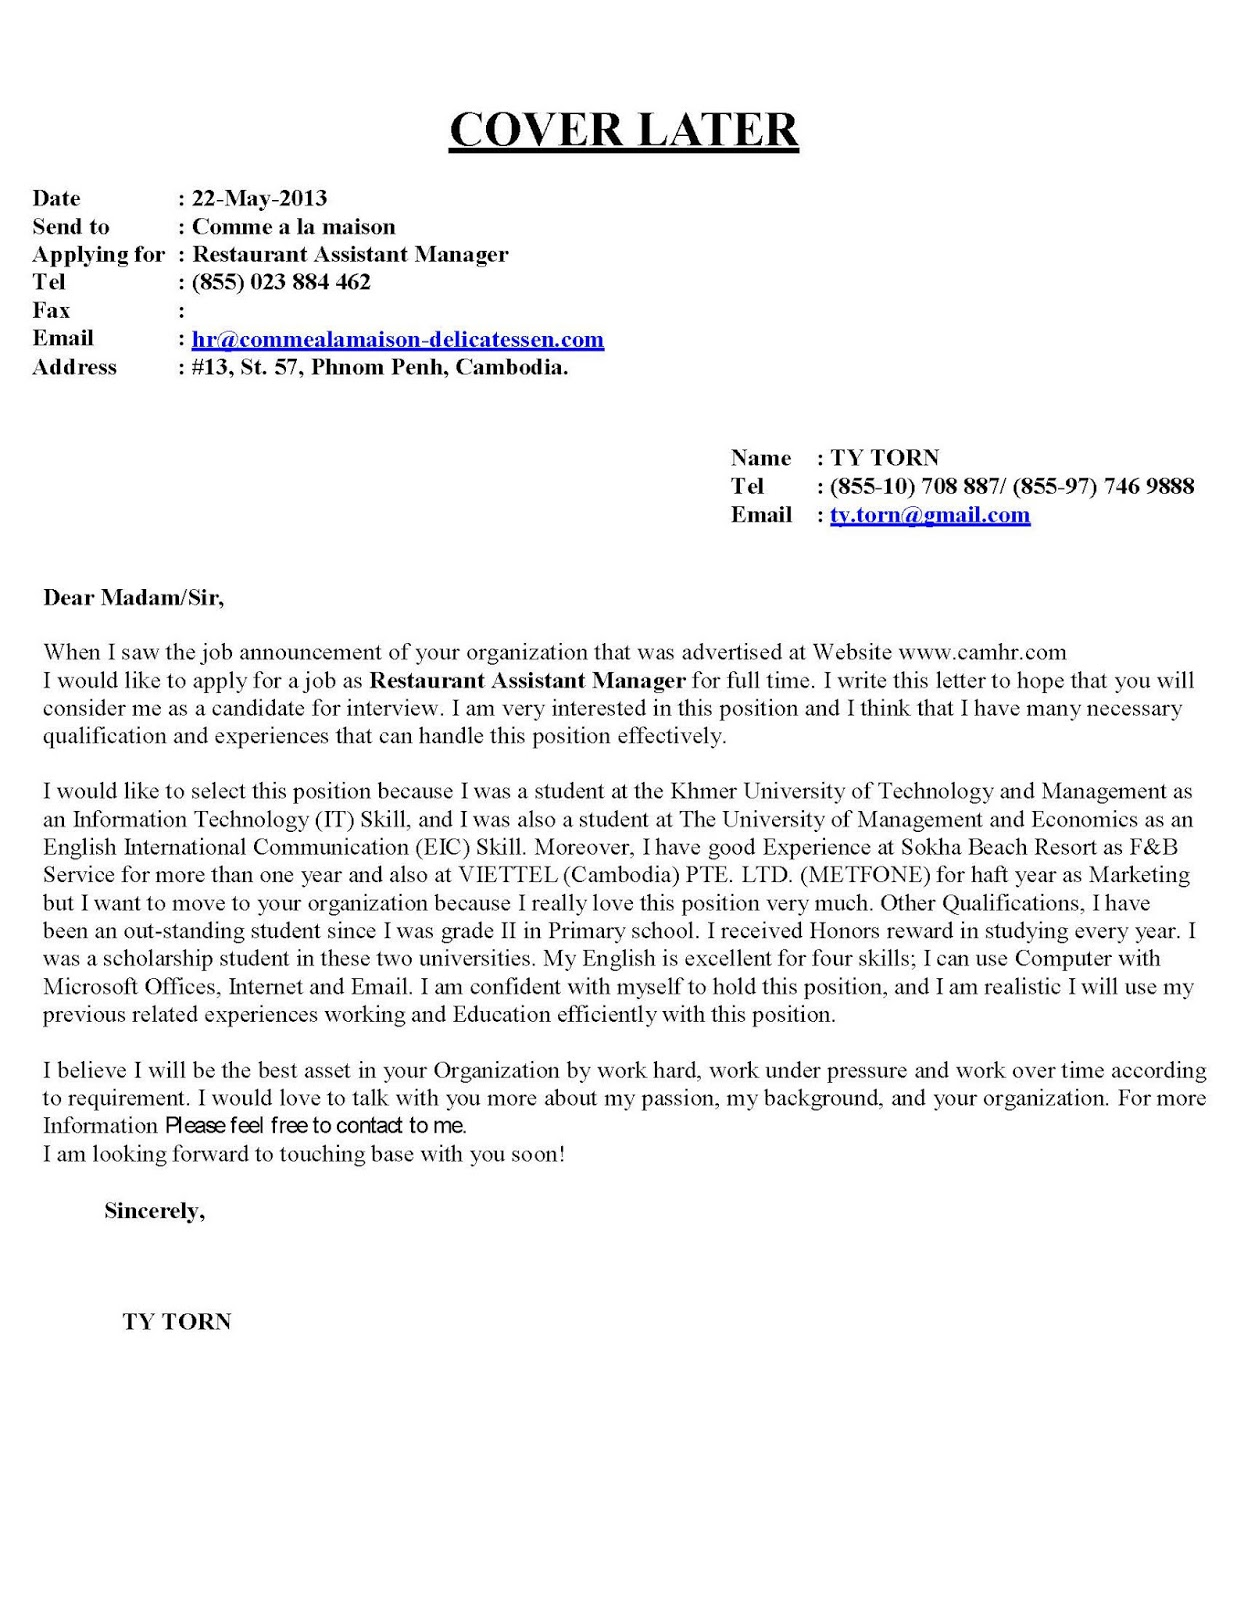 Home Energy Auditor Cover Letter | Vice President Of Administrati ...